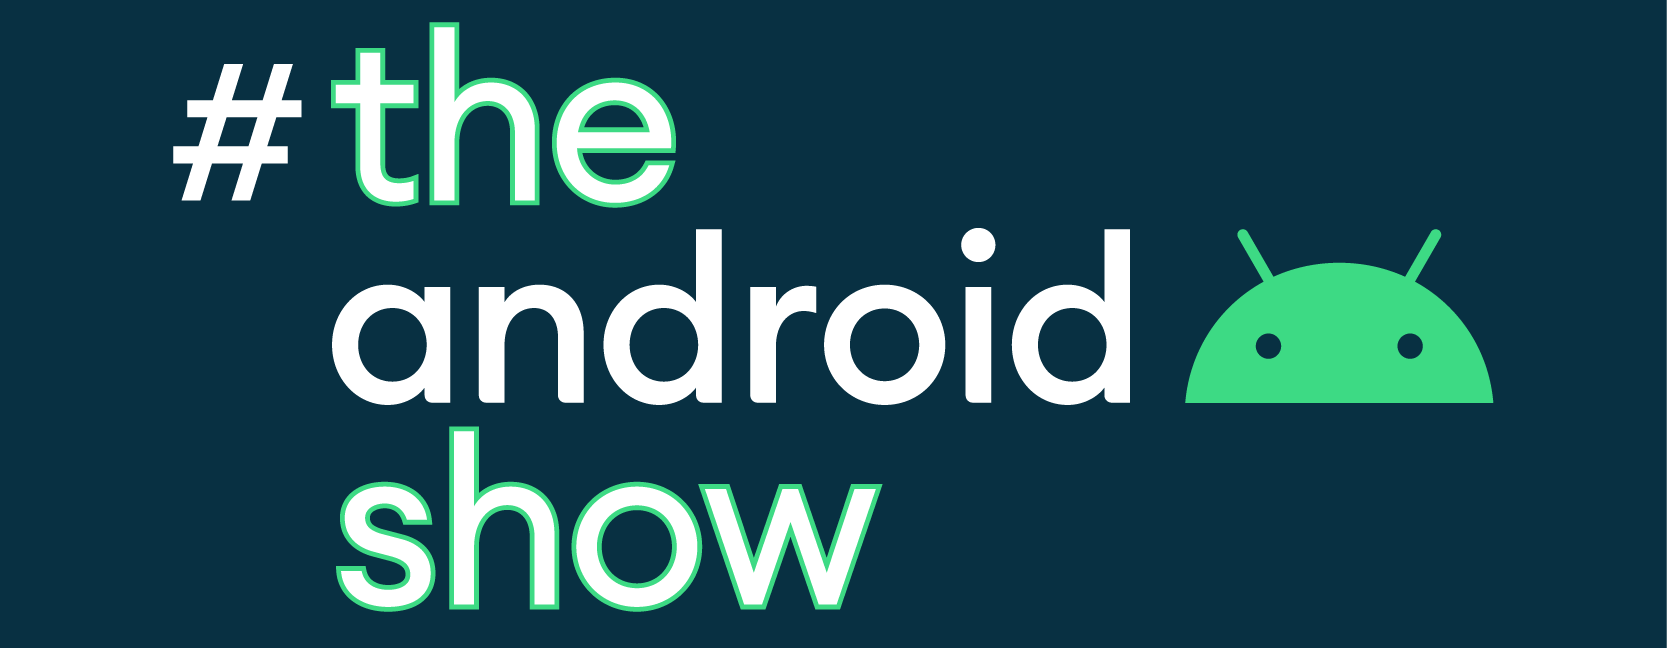 Android Show logo